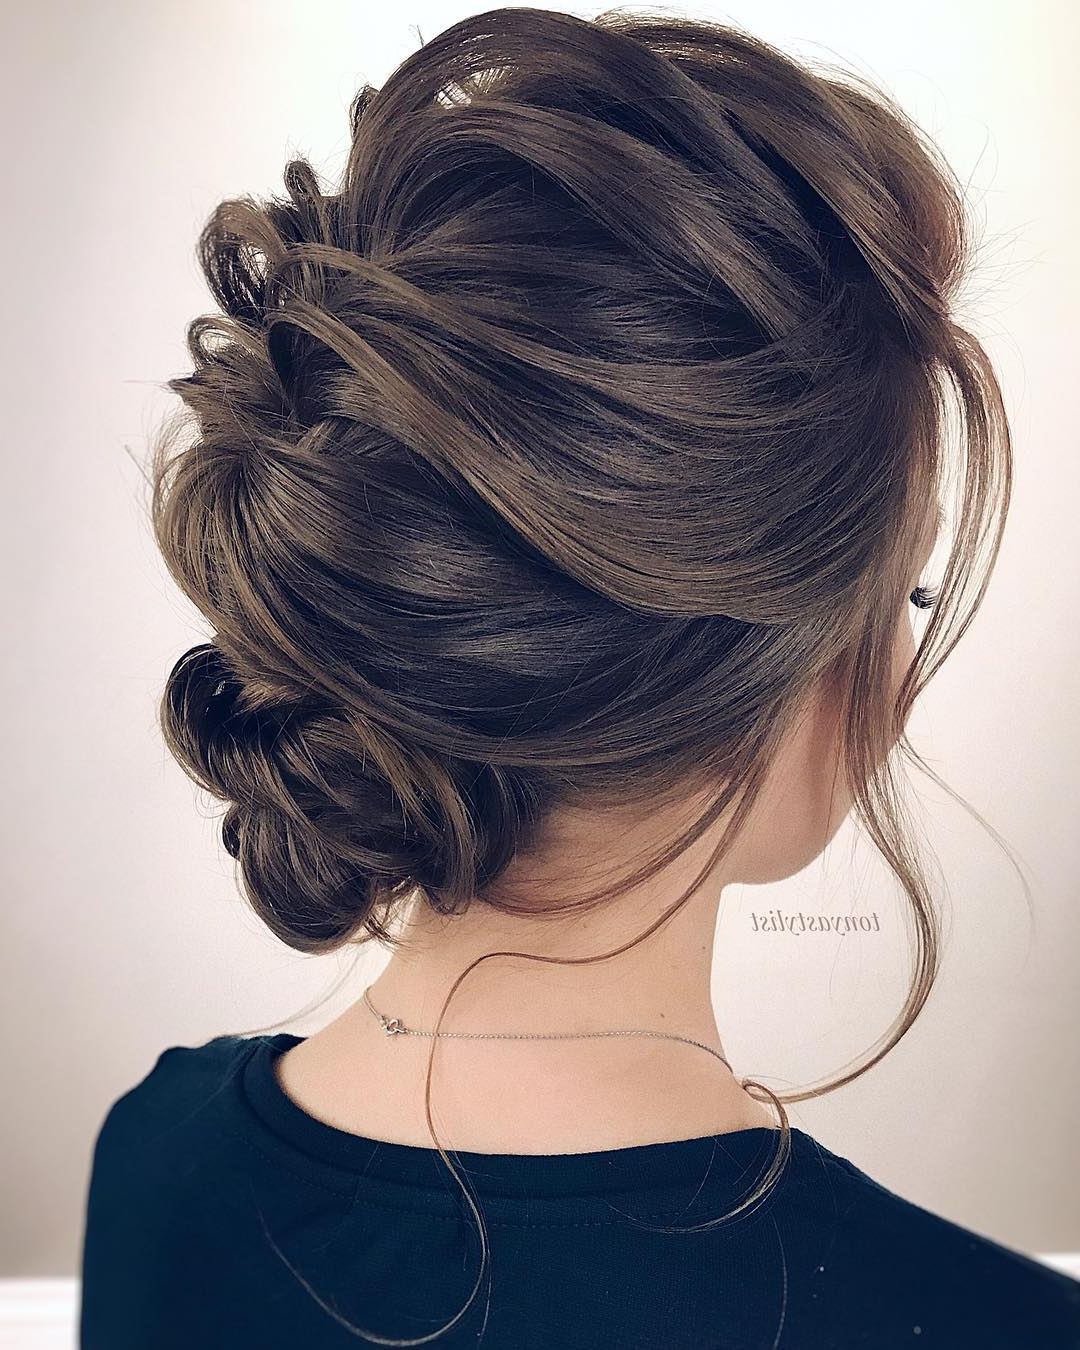 10 Updos For Medium Length Hair – Prom & Homecoming Hairstyle Ideas 2019 Within Popular Low Pearled Prom Updos (View 9 of 20)